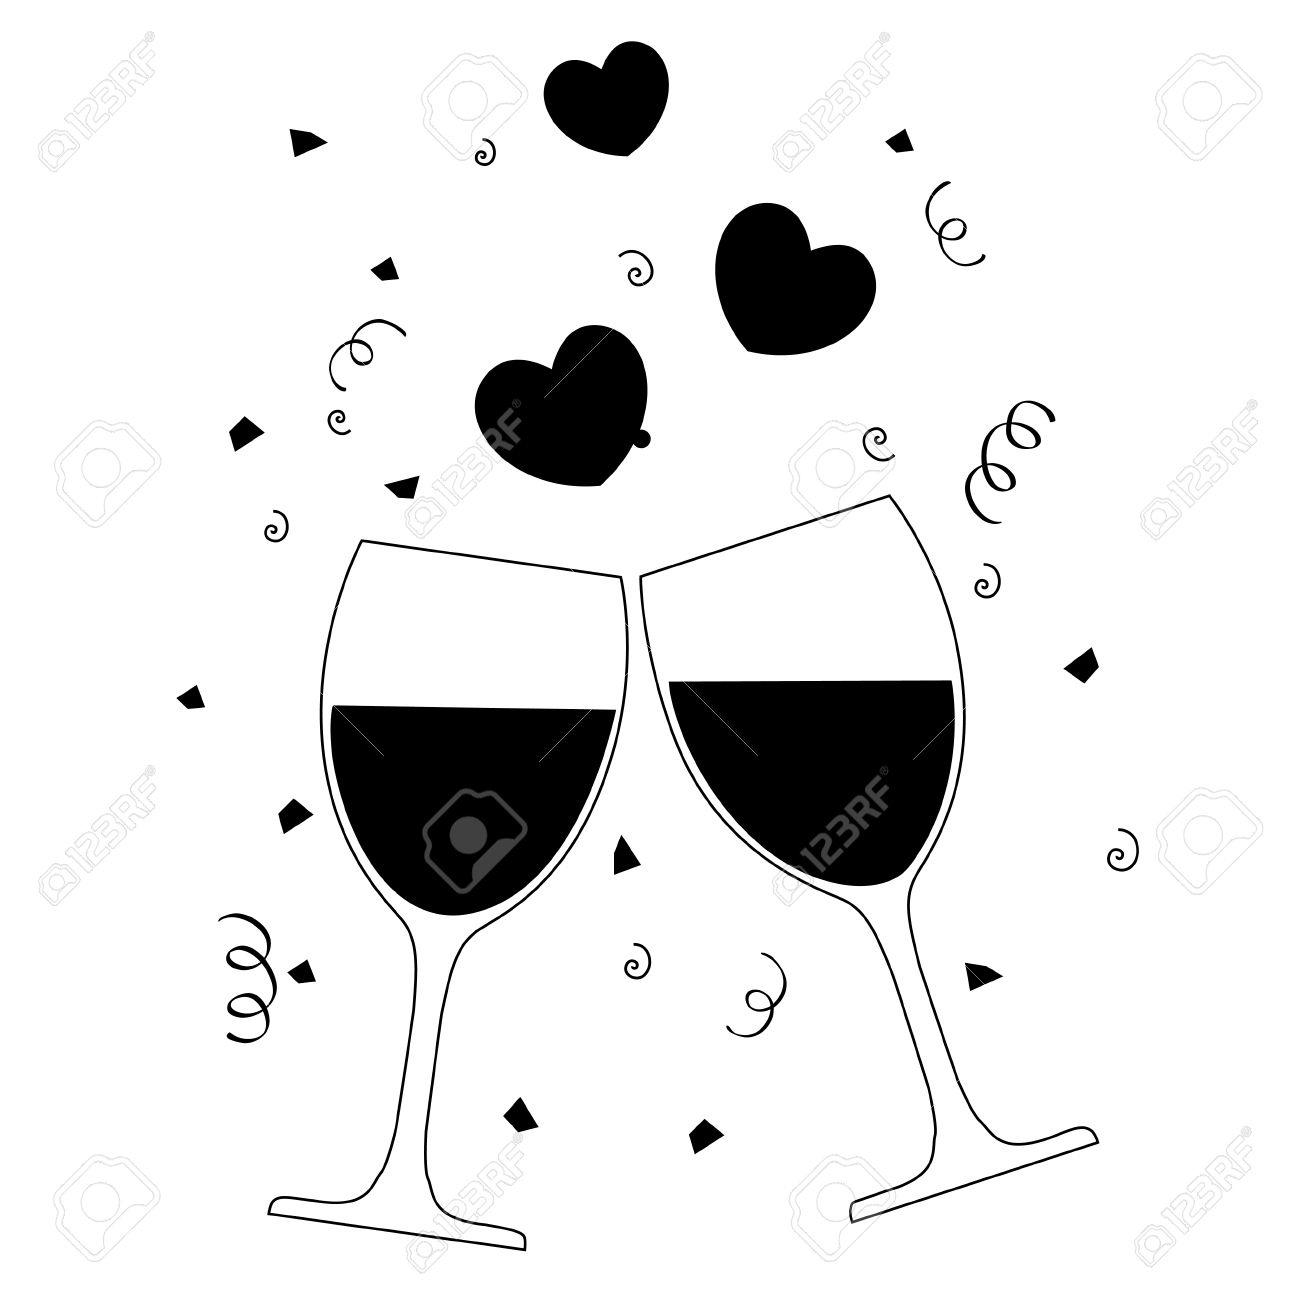 Silhouette Of Two Wine Glasses With Hearts And Confetti Background.